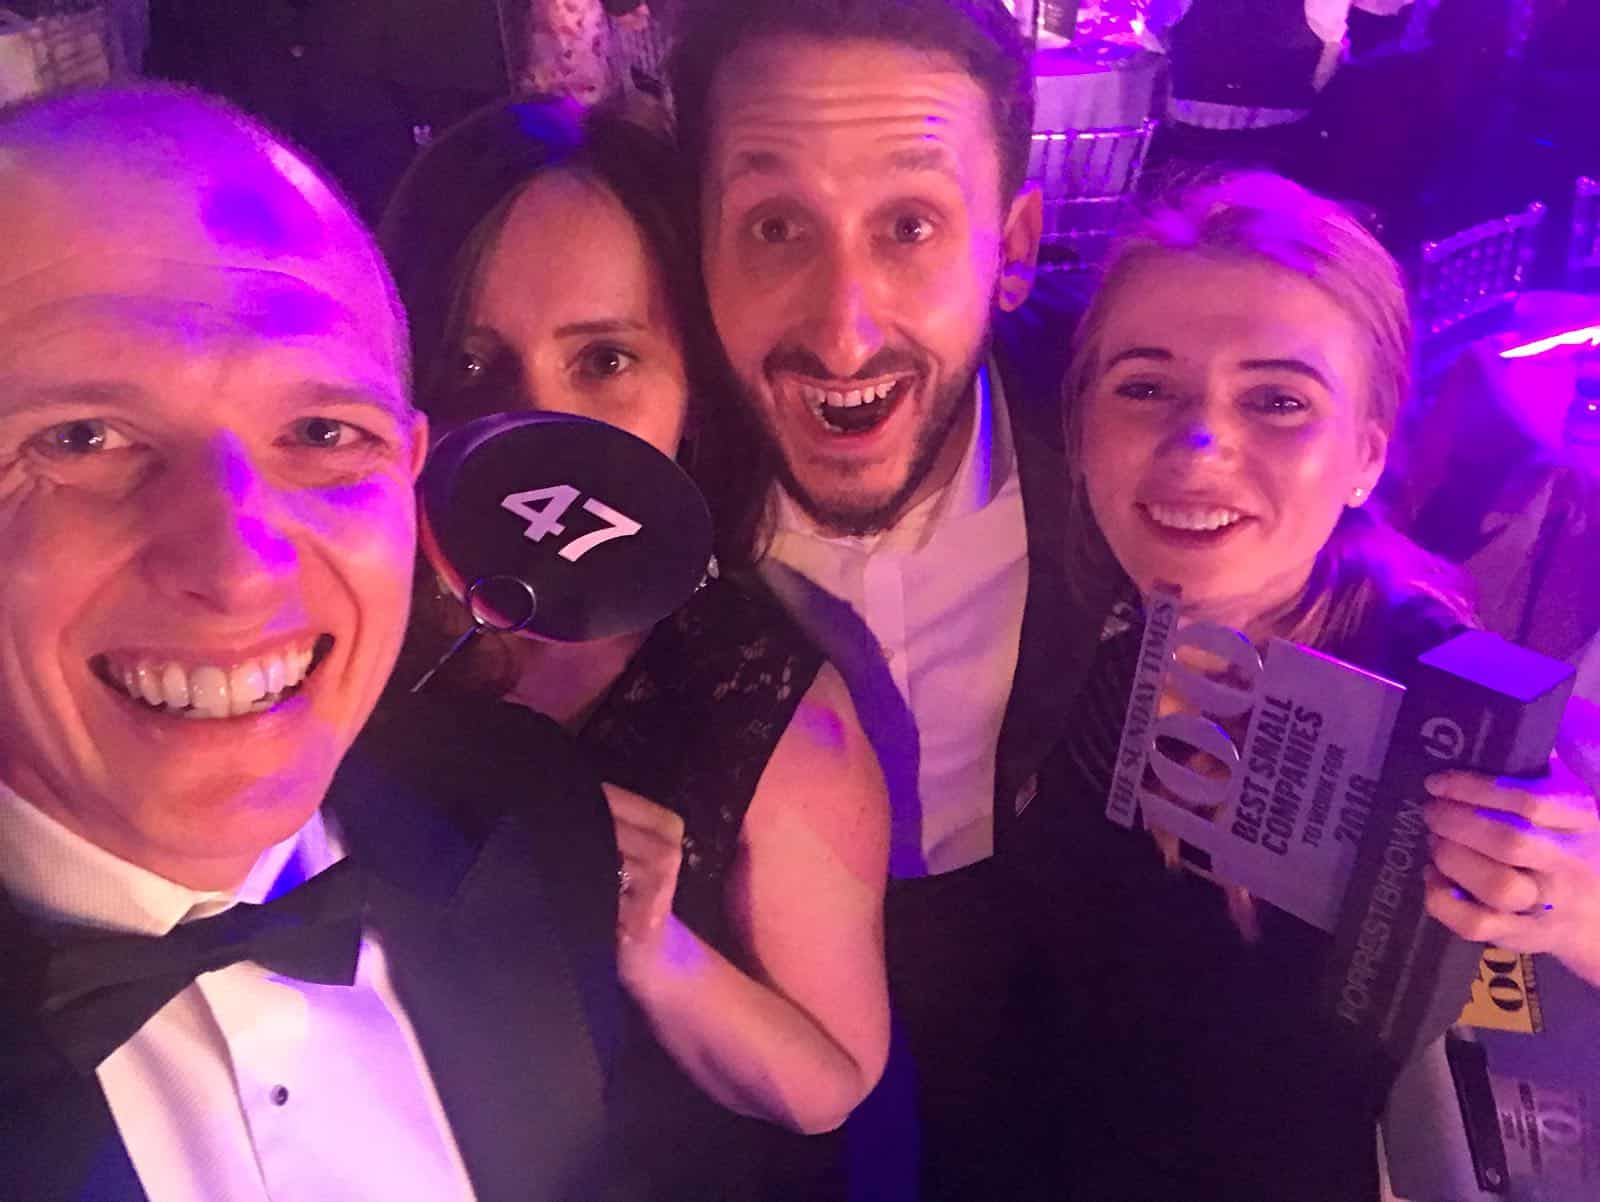 ForrestBrown excited to rank 47 of Top 100 Sunday Times Best Small Companies to Work For